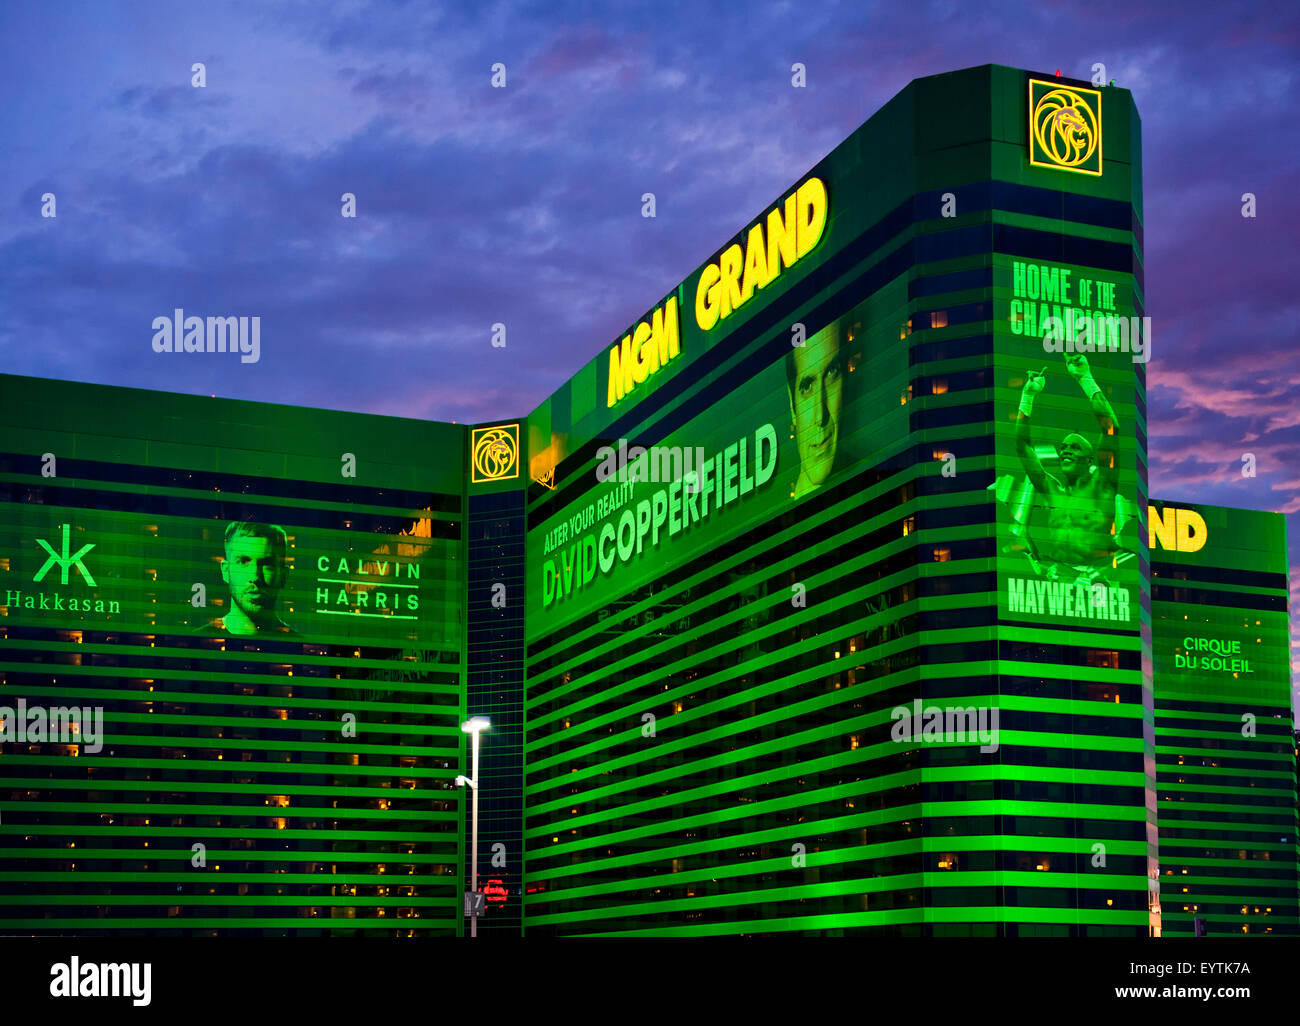 MGM Grand Hotel and Casino Las Vegas, Nevada at twilight with vibrant color and  dramatic sky. - Stock Image